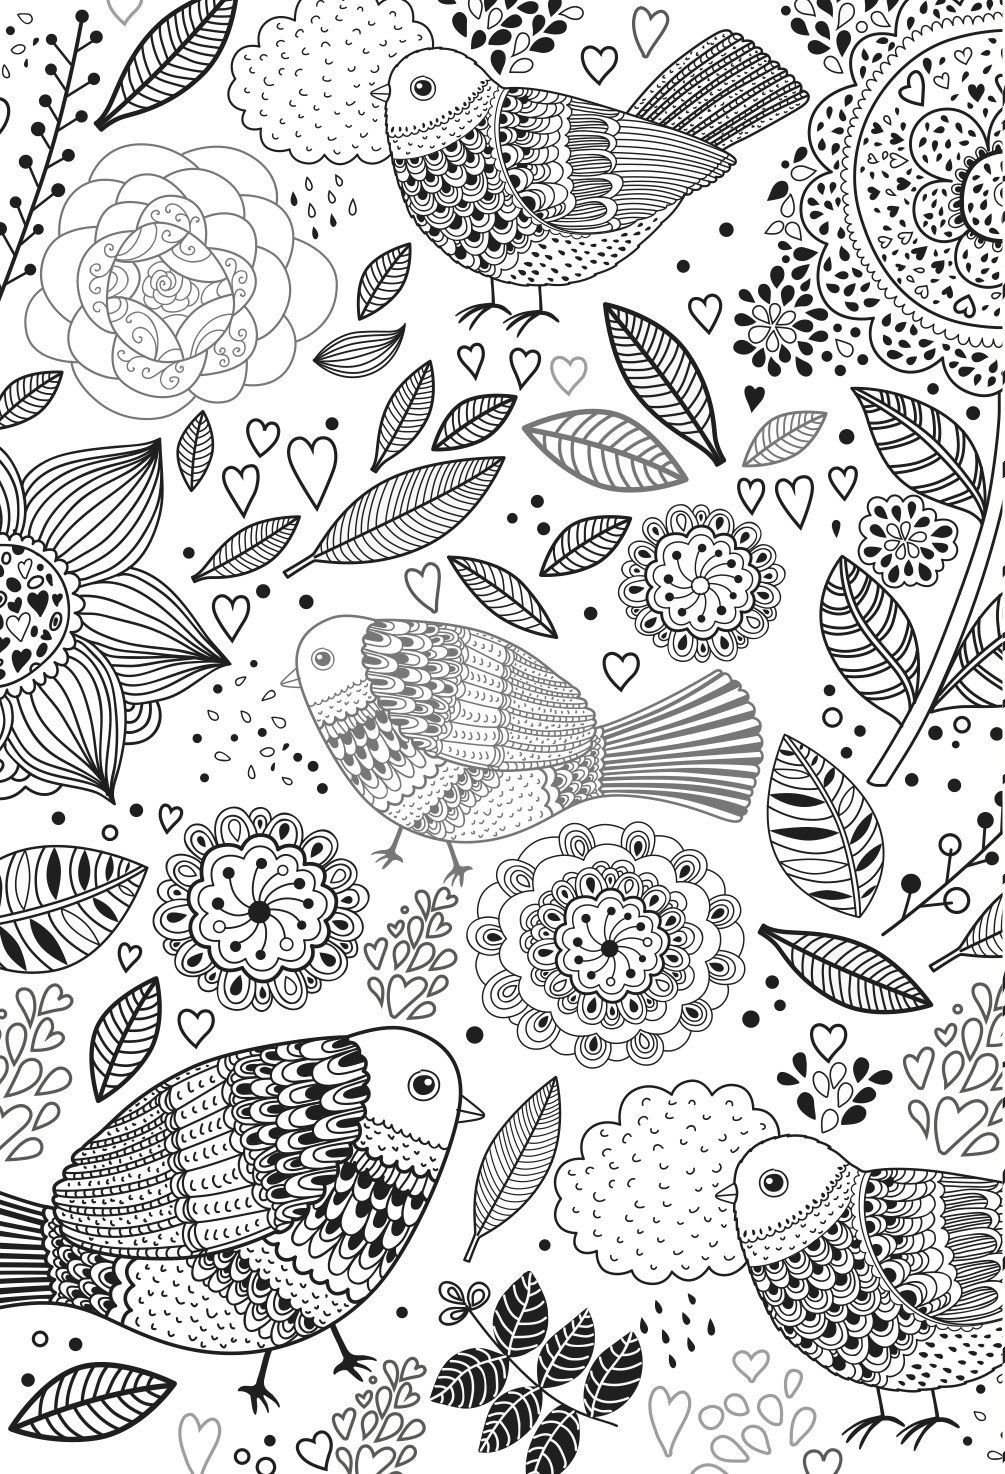 Colouring Books for Adults | dibujos para colorear de adultos ...